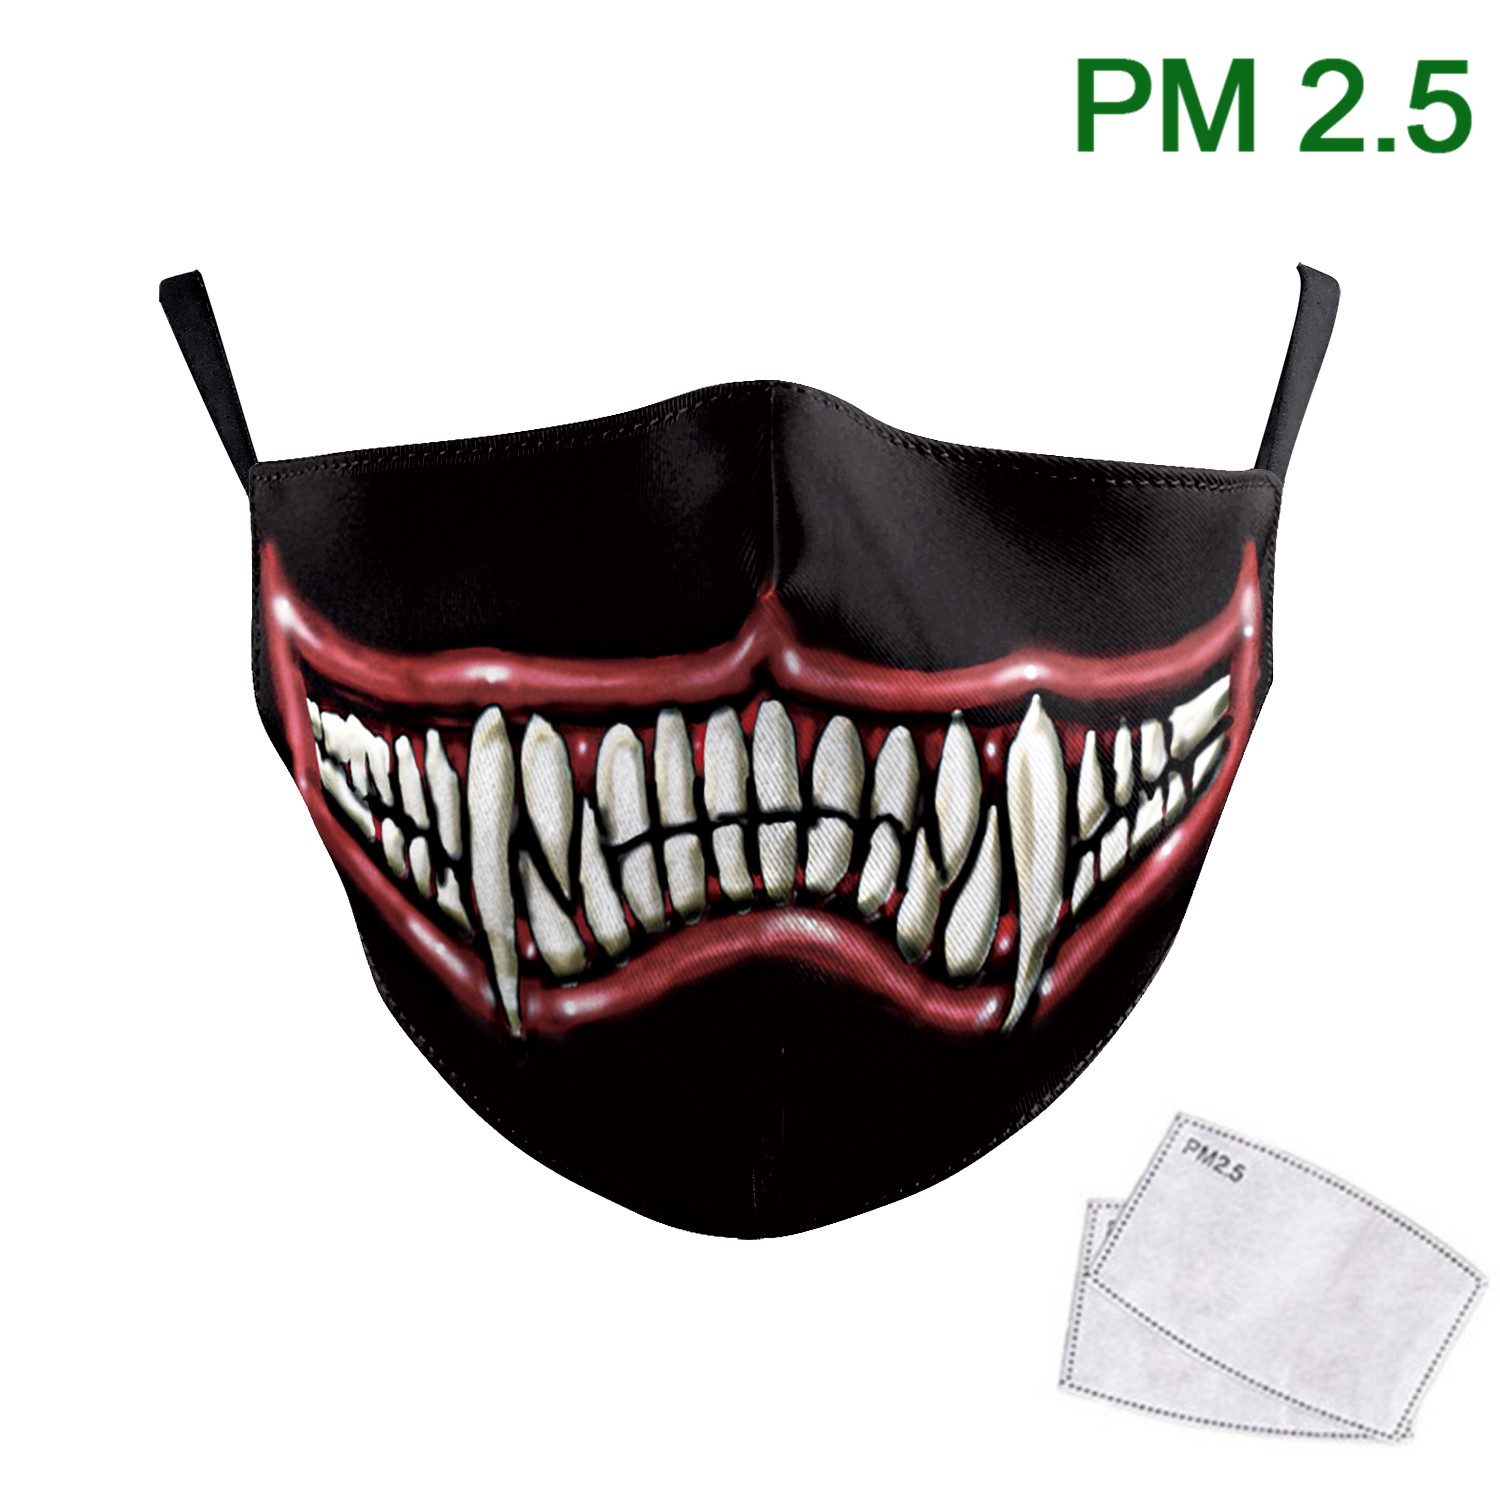 Funny Adult Washable Printed Mask Sharp Teeth Black Mask PM 2.5 Protective Dust Reusable Fabric Mouth Muffle Breathable